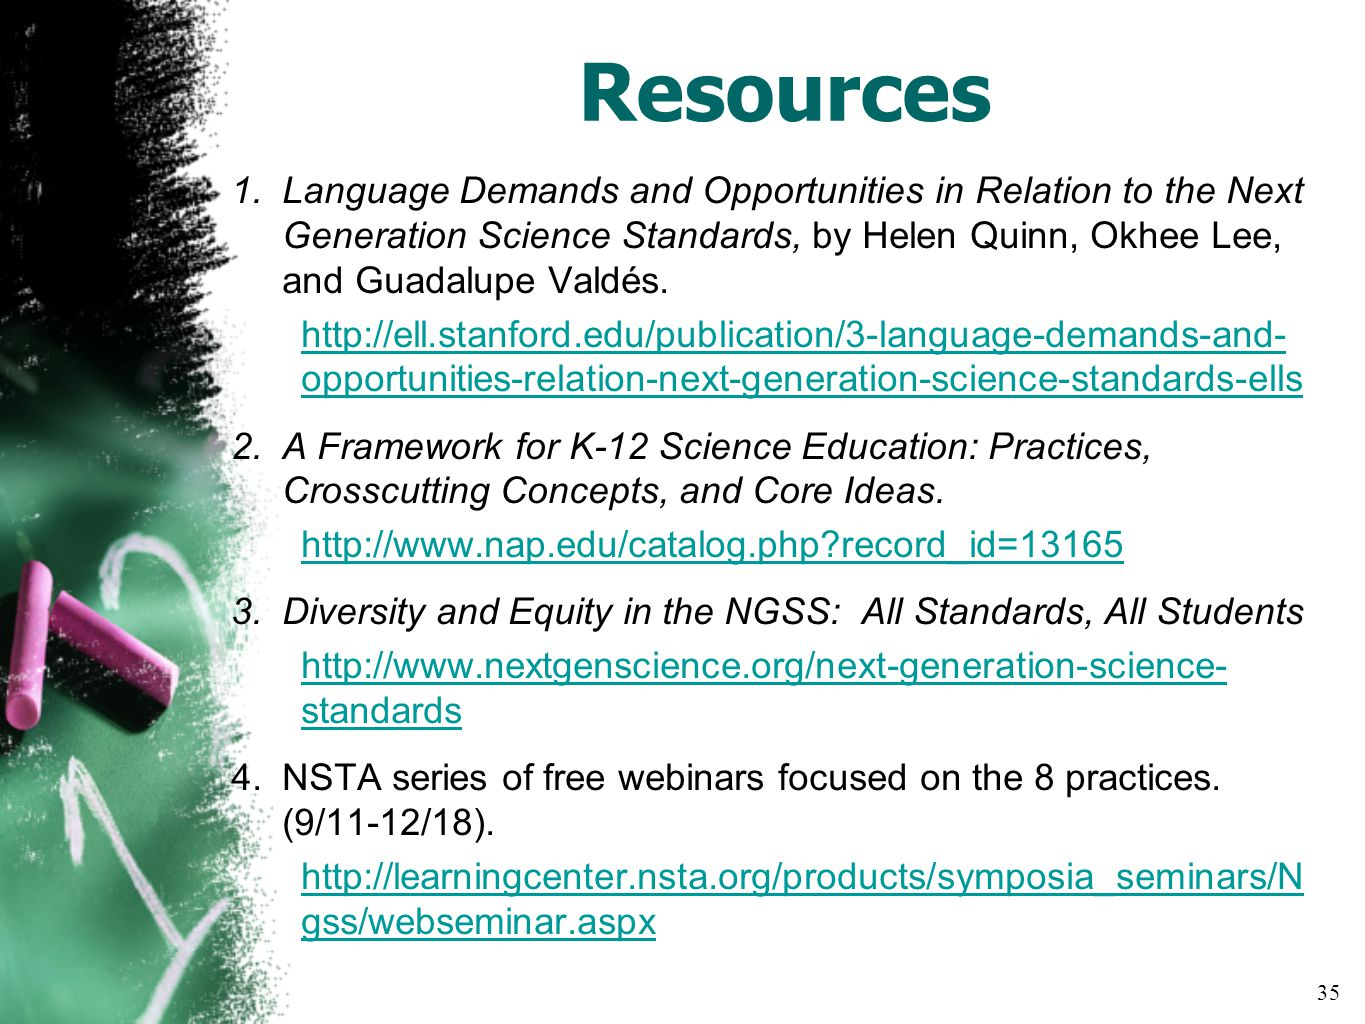 Resources 1.Language Demands and Opportunities in Relation to the Next Generation Science Standards, by Helen Quinn, Okhee Lee, and Guadalupe Valdés.